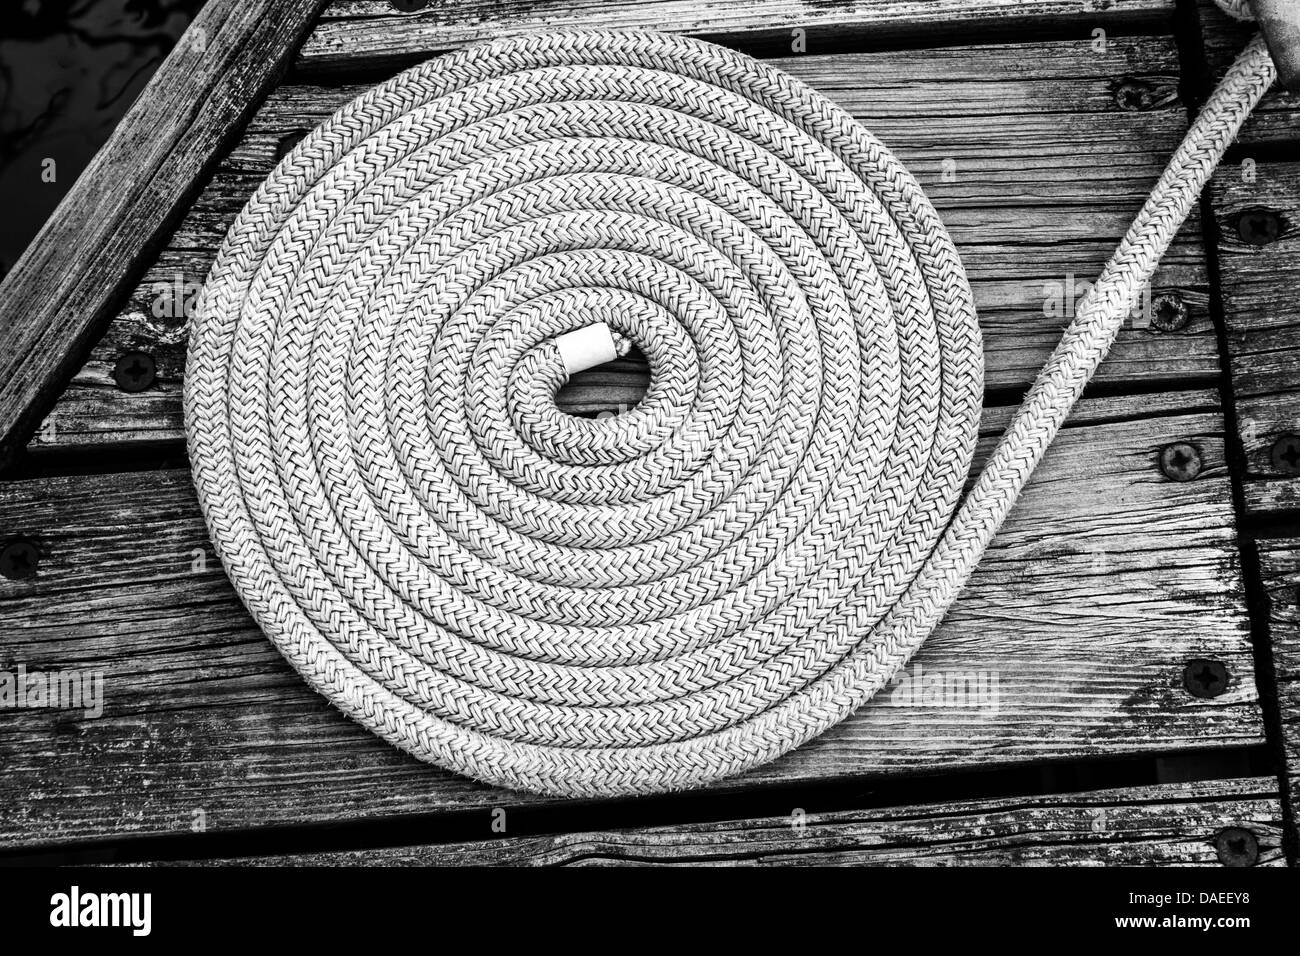 Coil of nylon rope on a pier - Stock Image